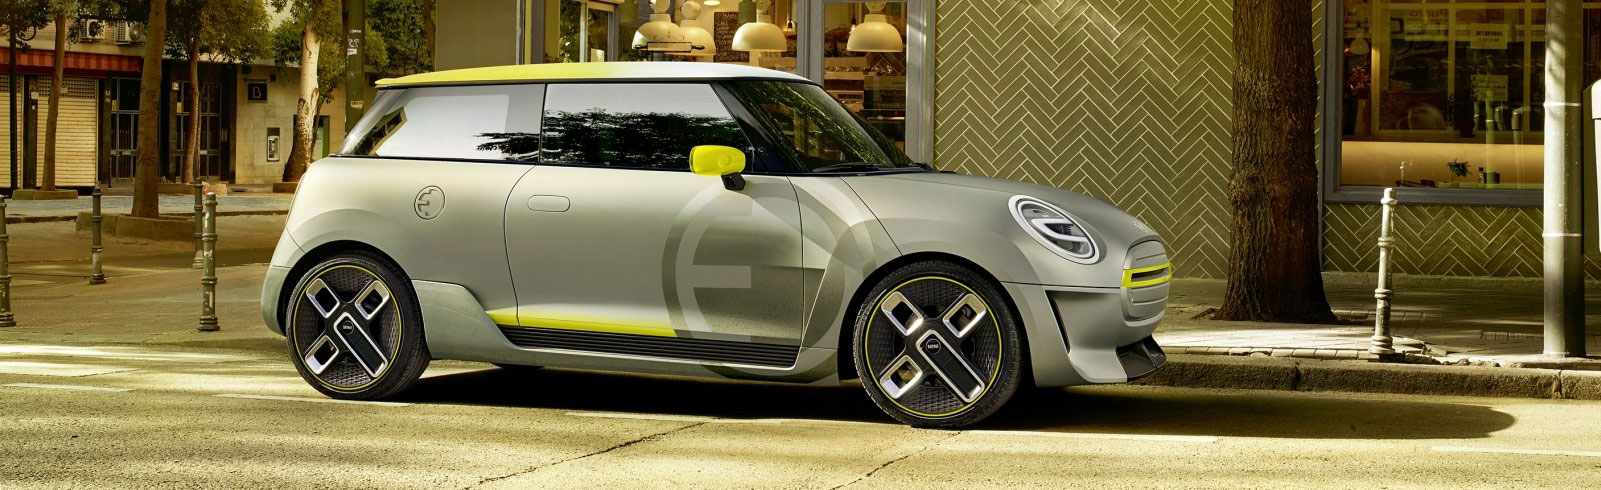 The all-electric MINI Cooper SE is official, packs a 32.6 kWh battery